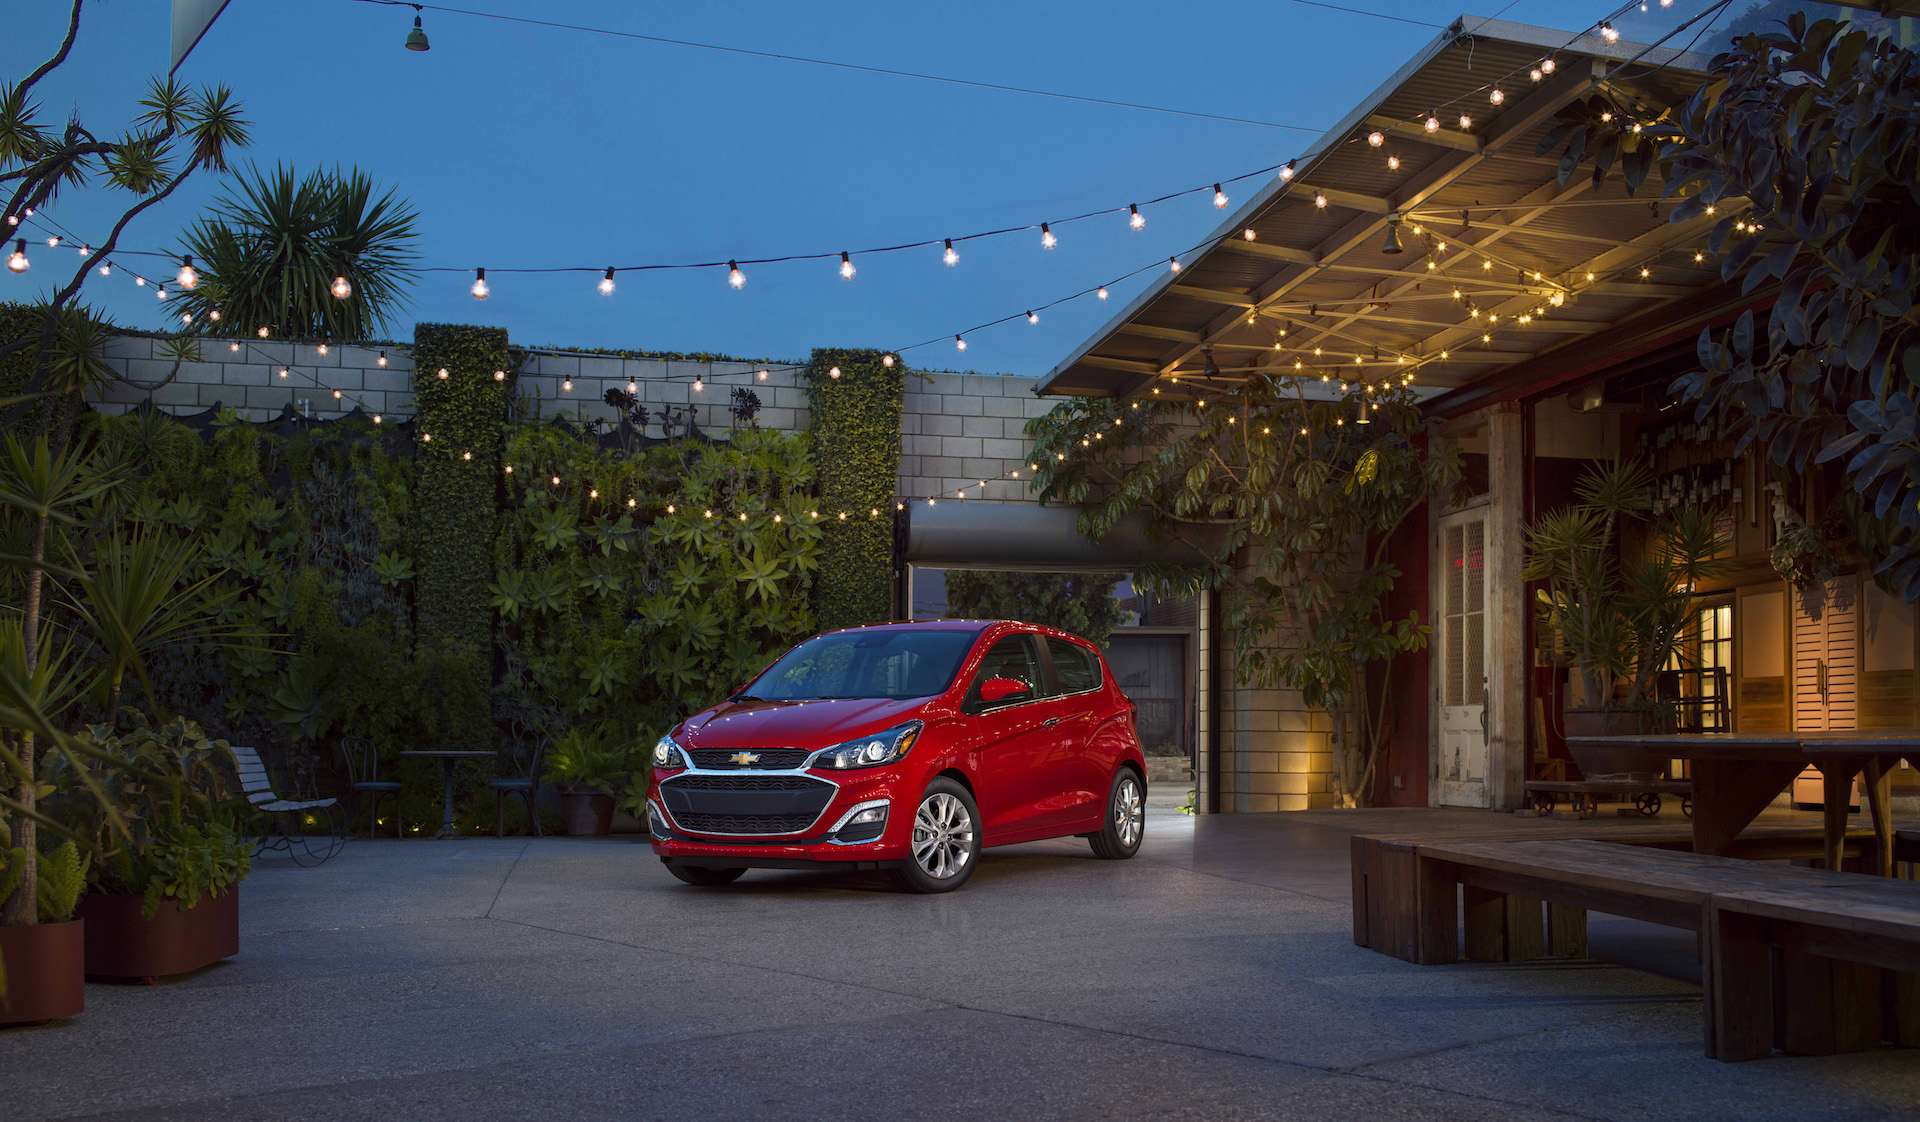 2019 Chevrolet Spark (Chevy) Review, Ratings, Specs, Prices